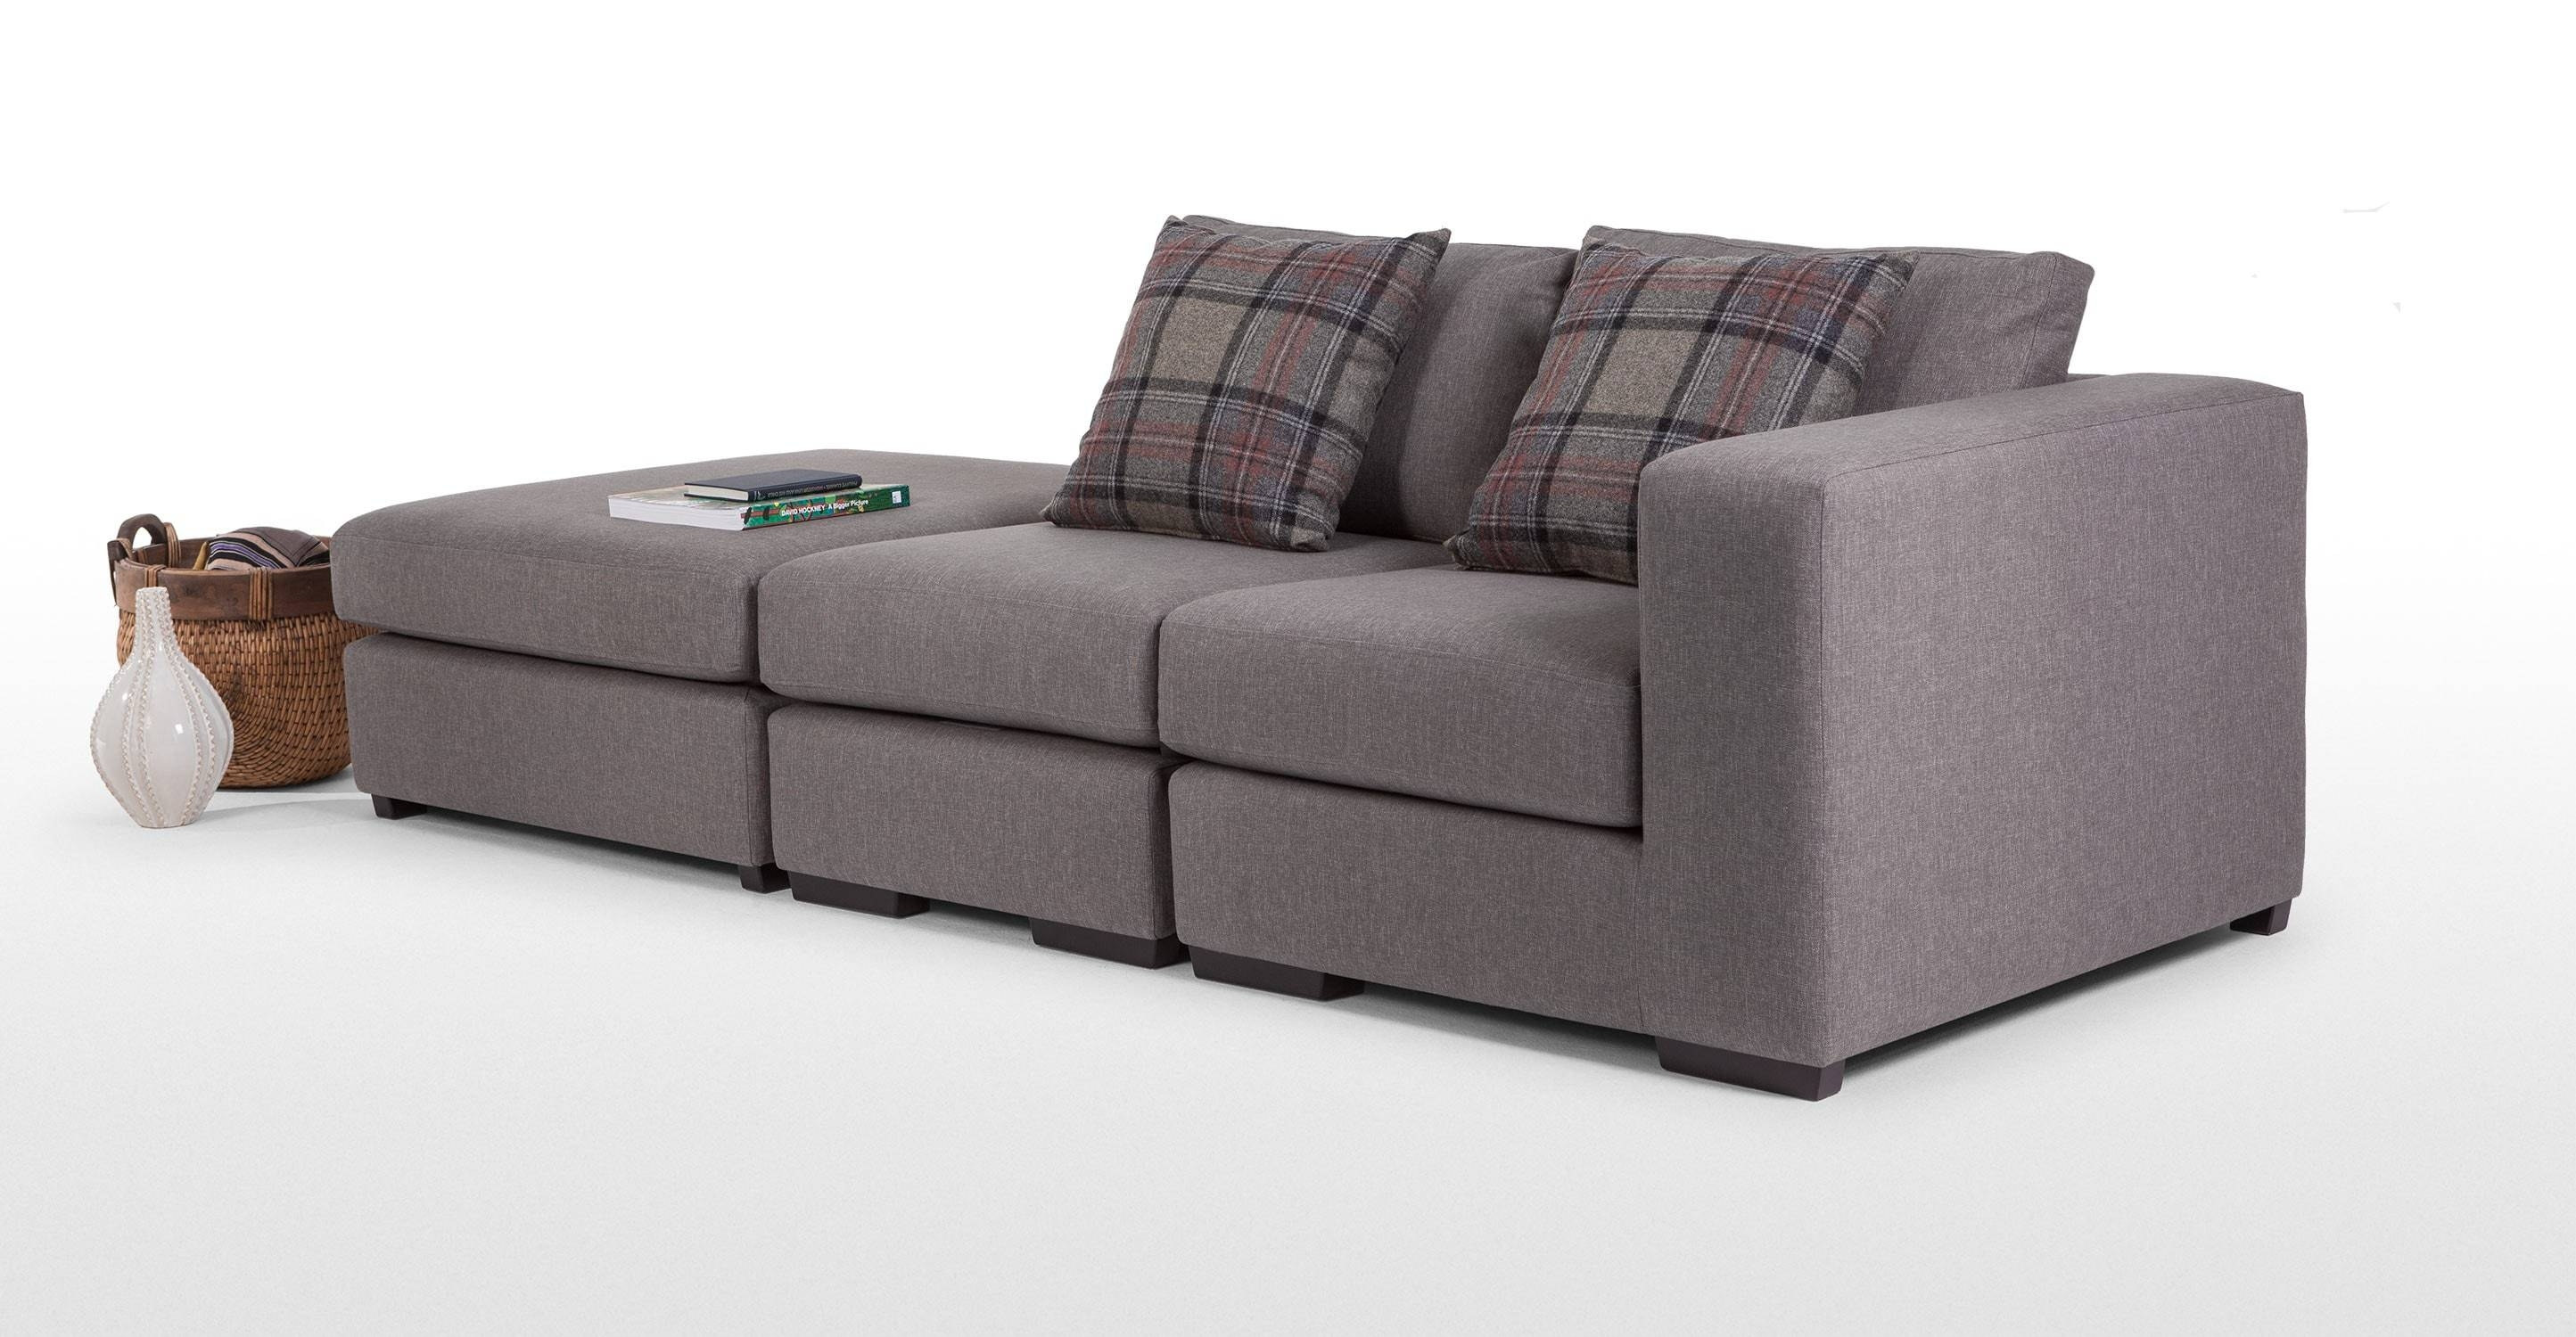 Abingdon Modular Corner Sofa Group In Misty Grey | Made for Modular Corner Sofas (Image 6 of 30)